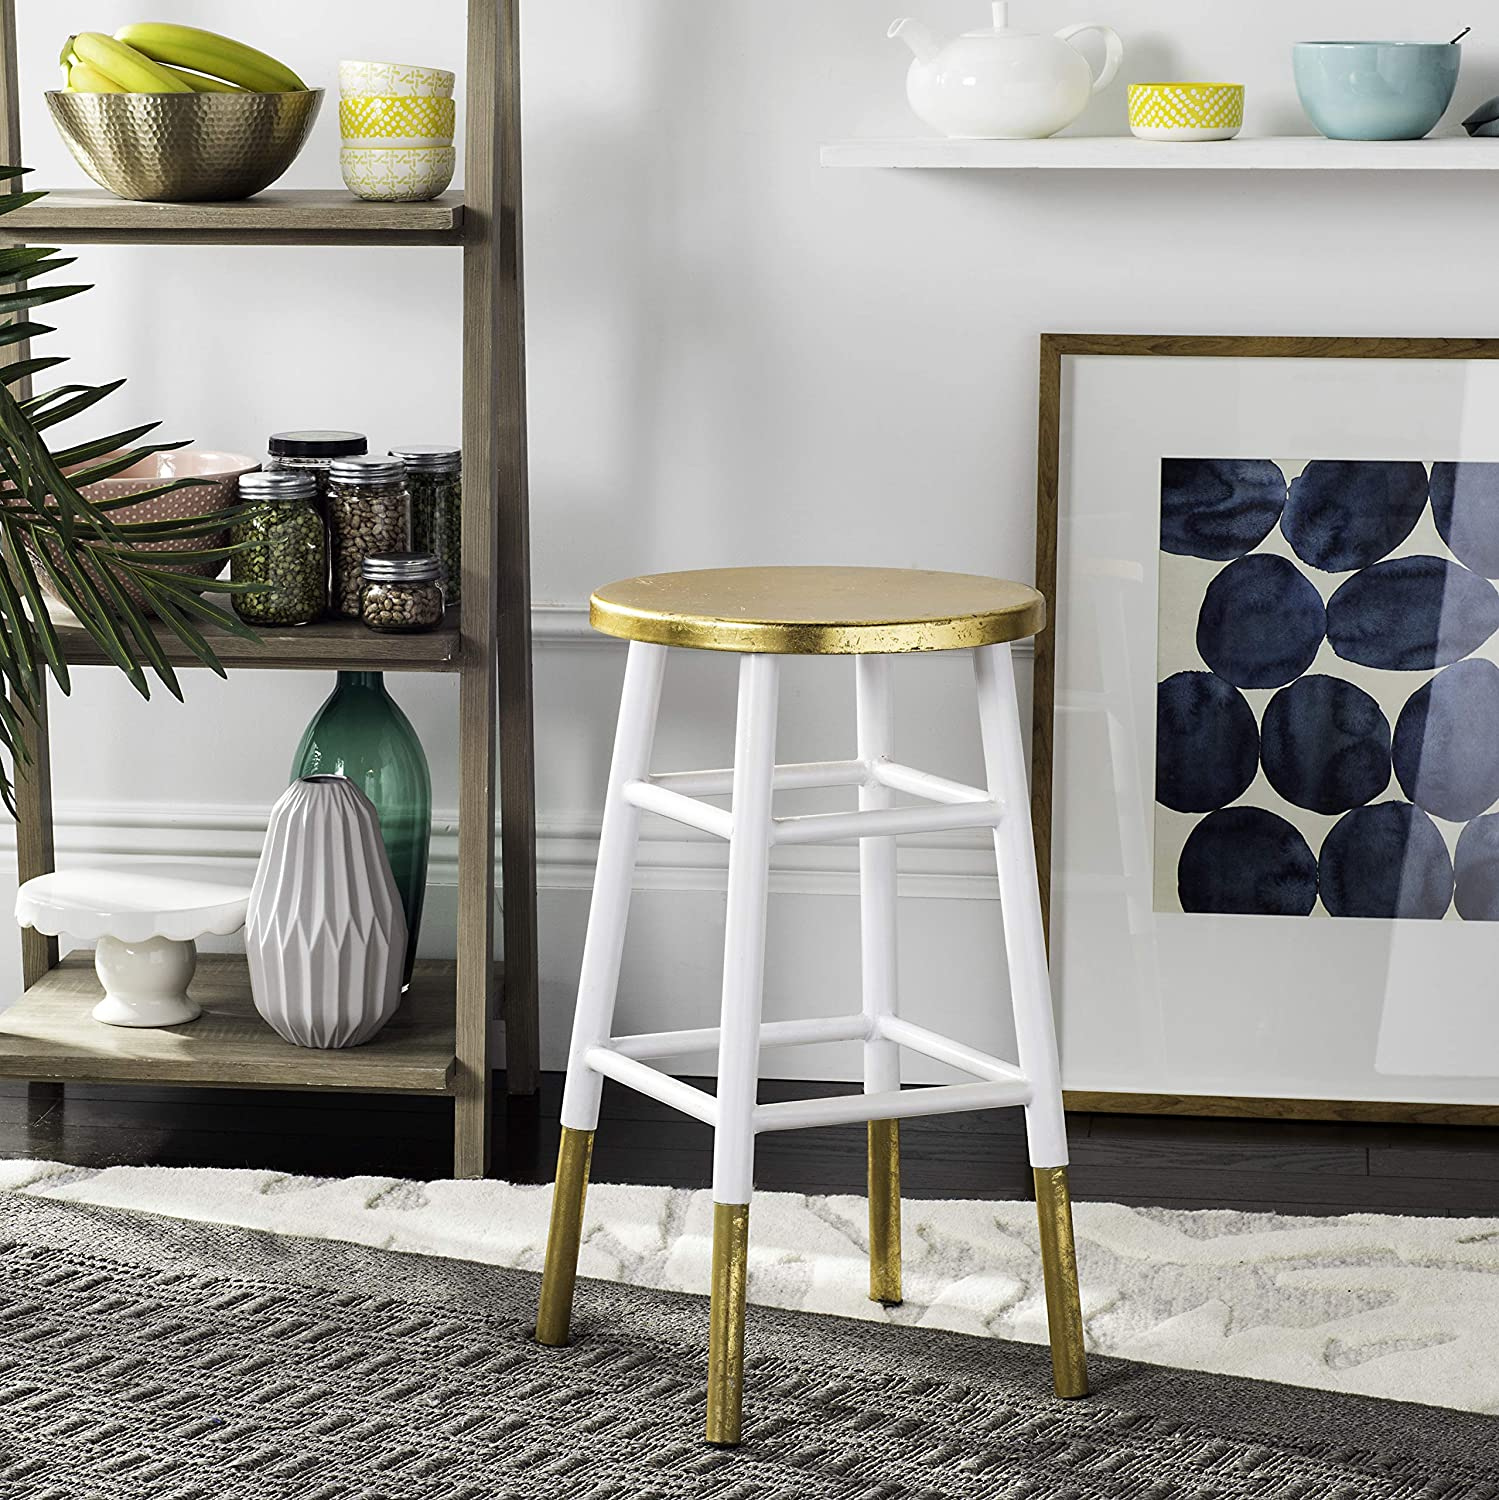 Safavieh Home Collection Emery White and Dipped Gold Leaf 24-inch Counter Stool